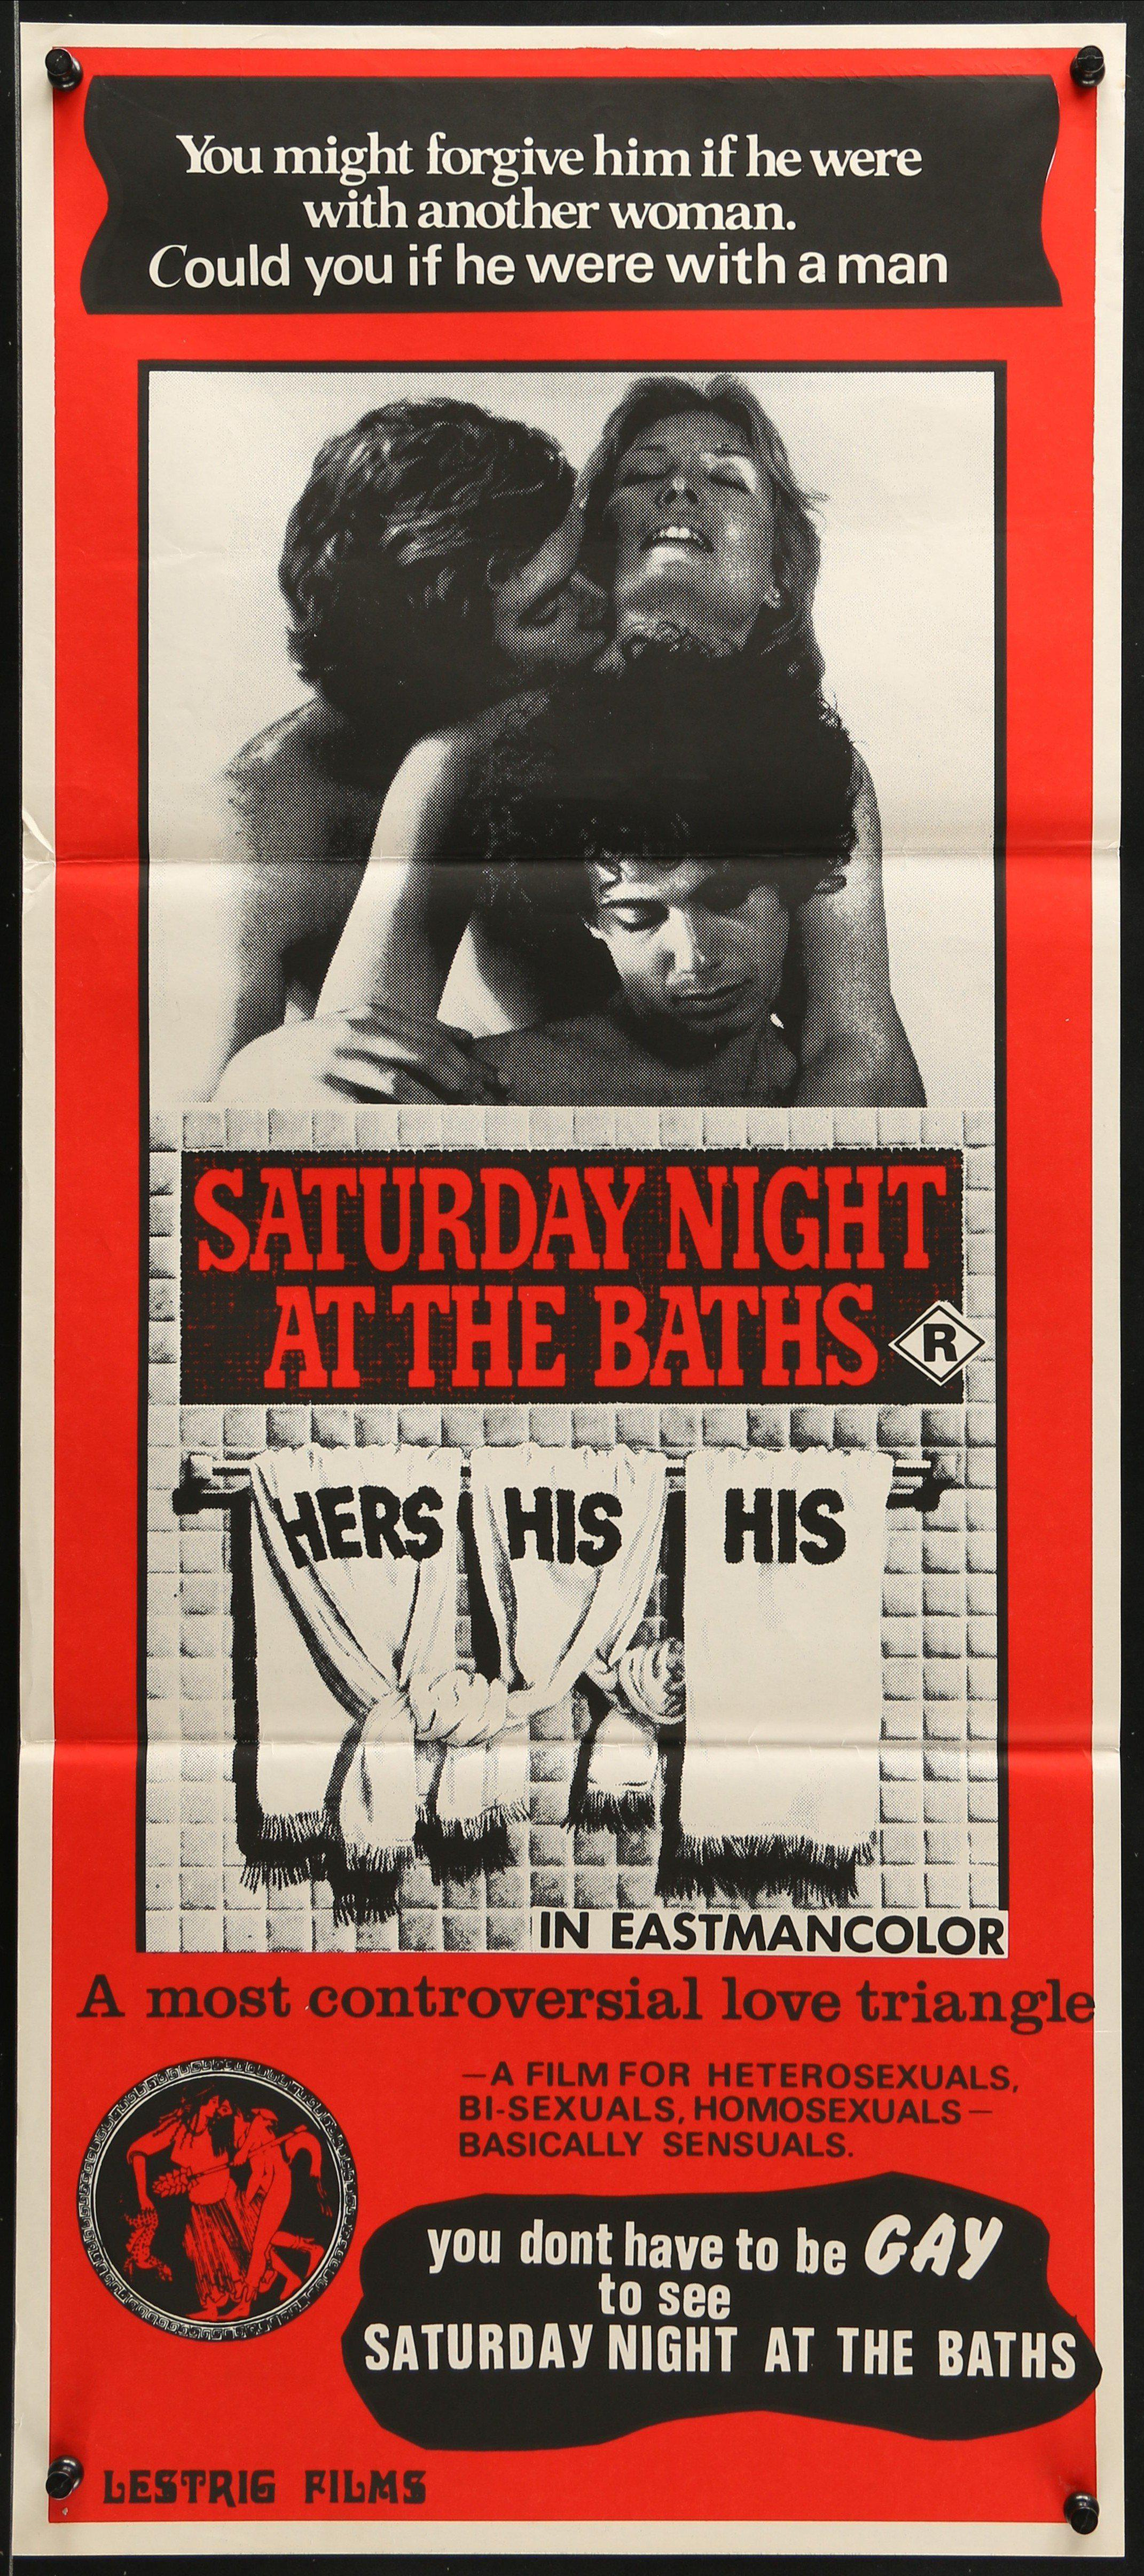 ce314a64b7 Saturday Night at the Baths Australian Daybill (13x30) Original Vintage  Movie Poster